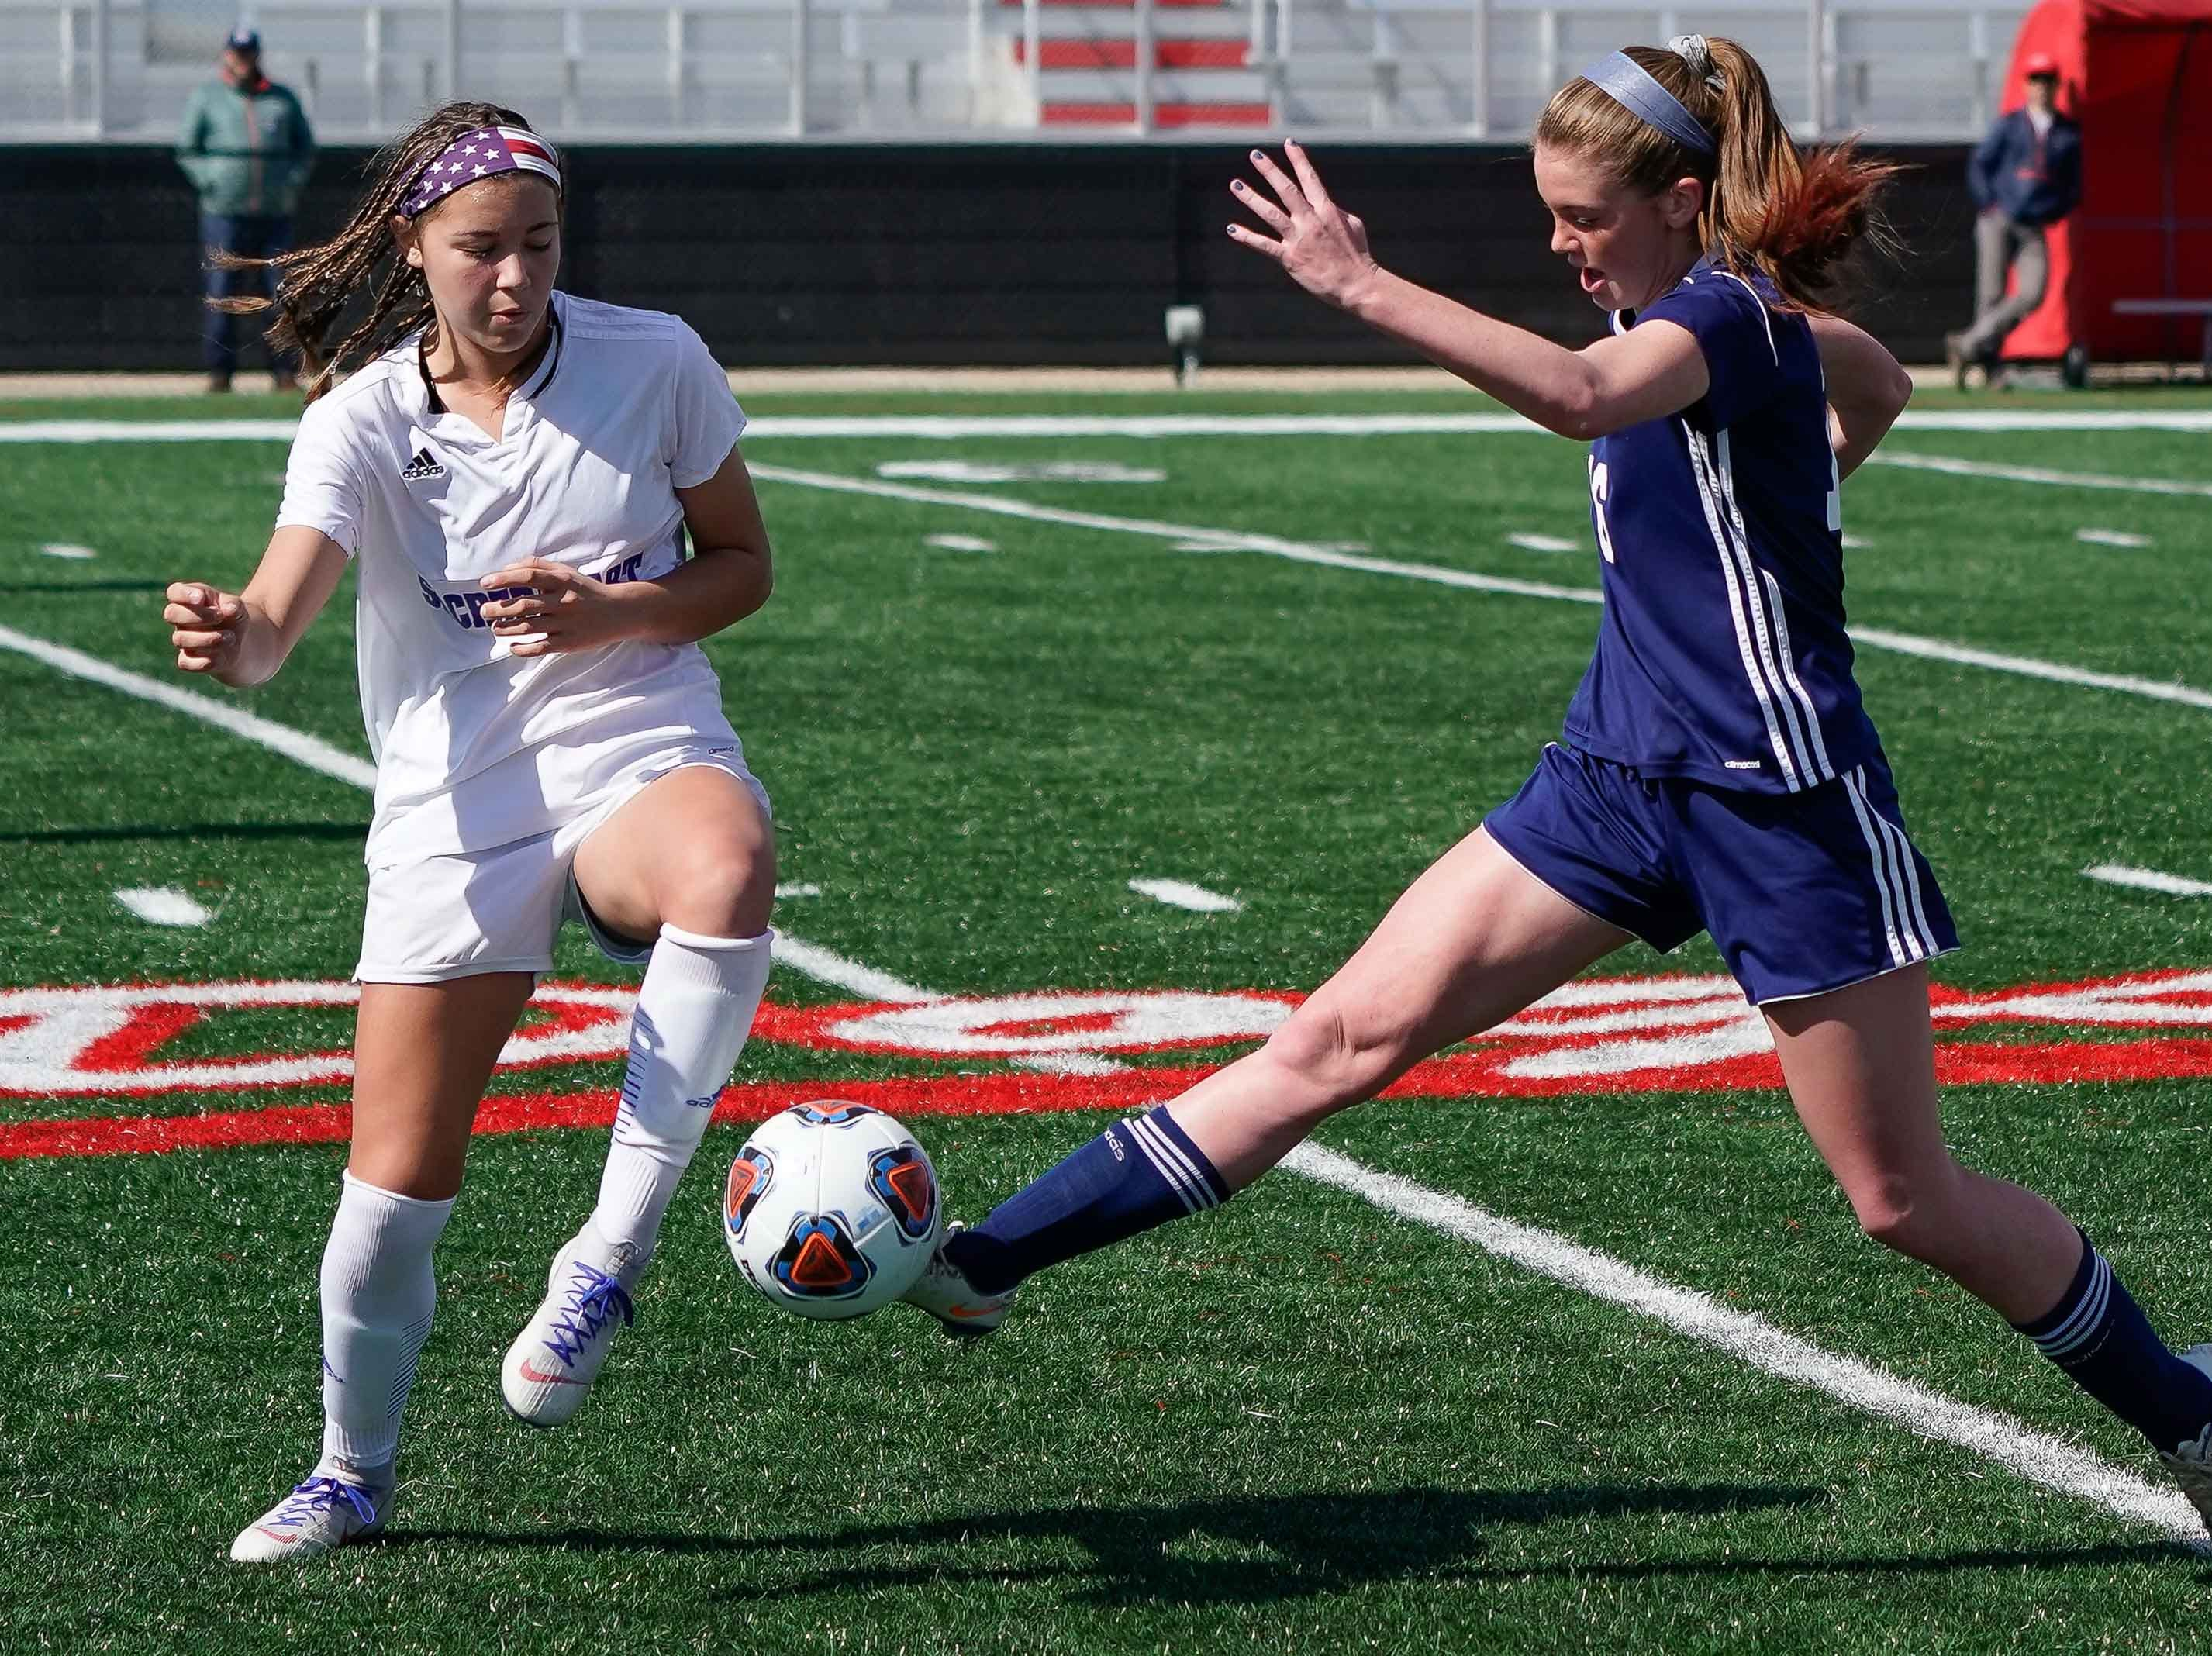 St. Andrew's Mary Reagan Barnett (16) kicks a ball against Sacred Heart's Graciella Falla (10) Sacred Heart during the MHSAA 1A,2A,3A  GIrls Soccer Championships held at Brandon High School in Brandon, MS, Saturday February 9, 2019.(Bob Smith-For The Clarion Ledger)